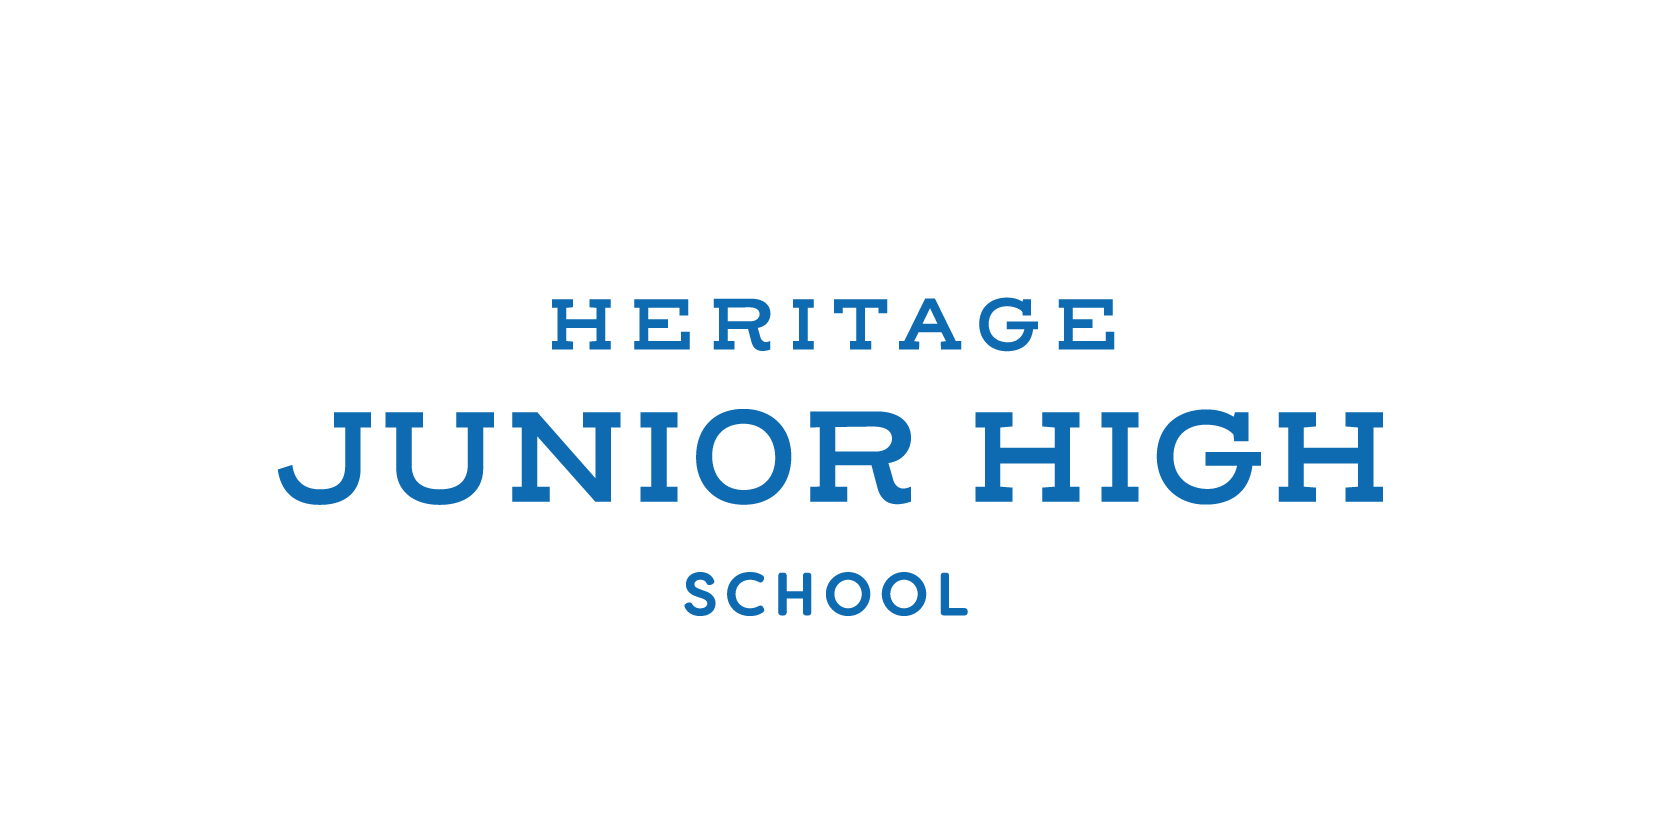 Heritage Junior High logo